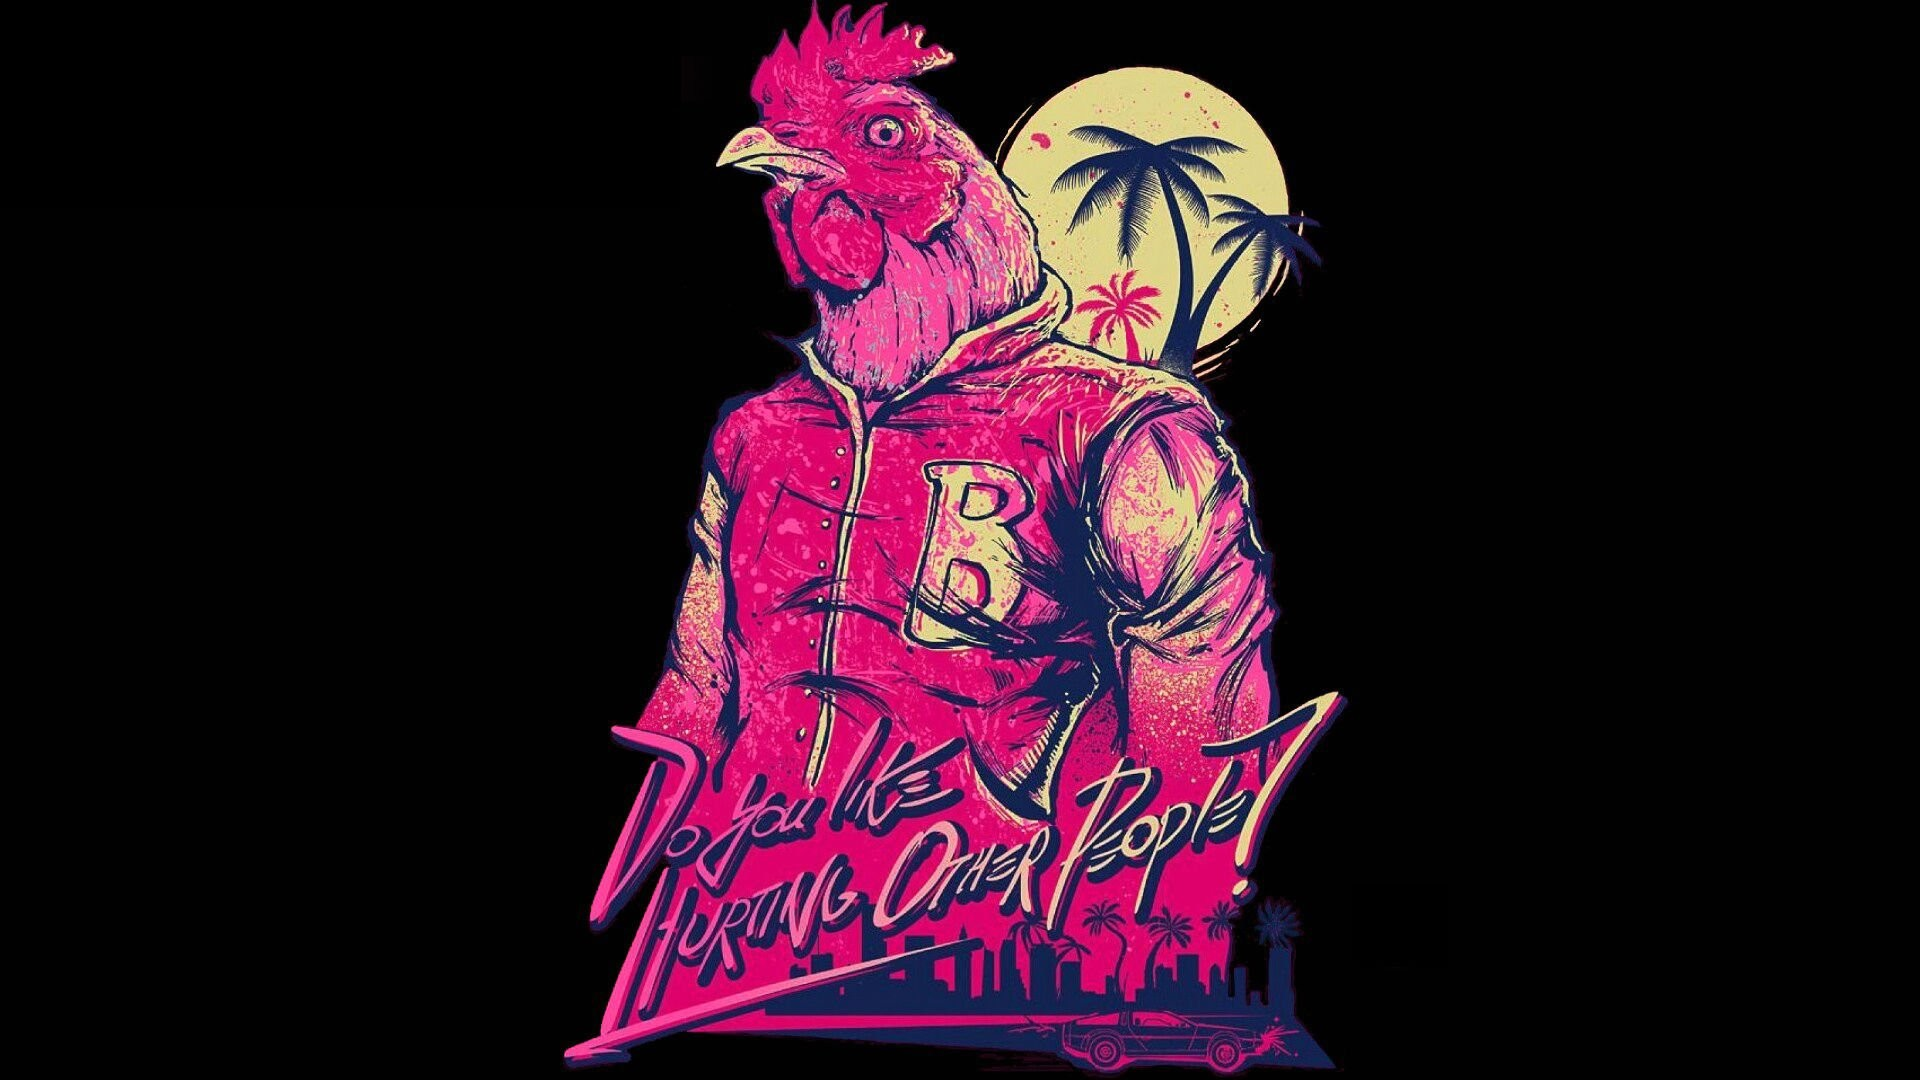 HOTLINE-MIAMI action shooter fighting hotline miami payday wallpaper |  | 547948 | WallpaperUP